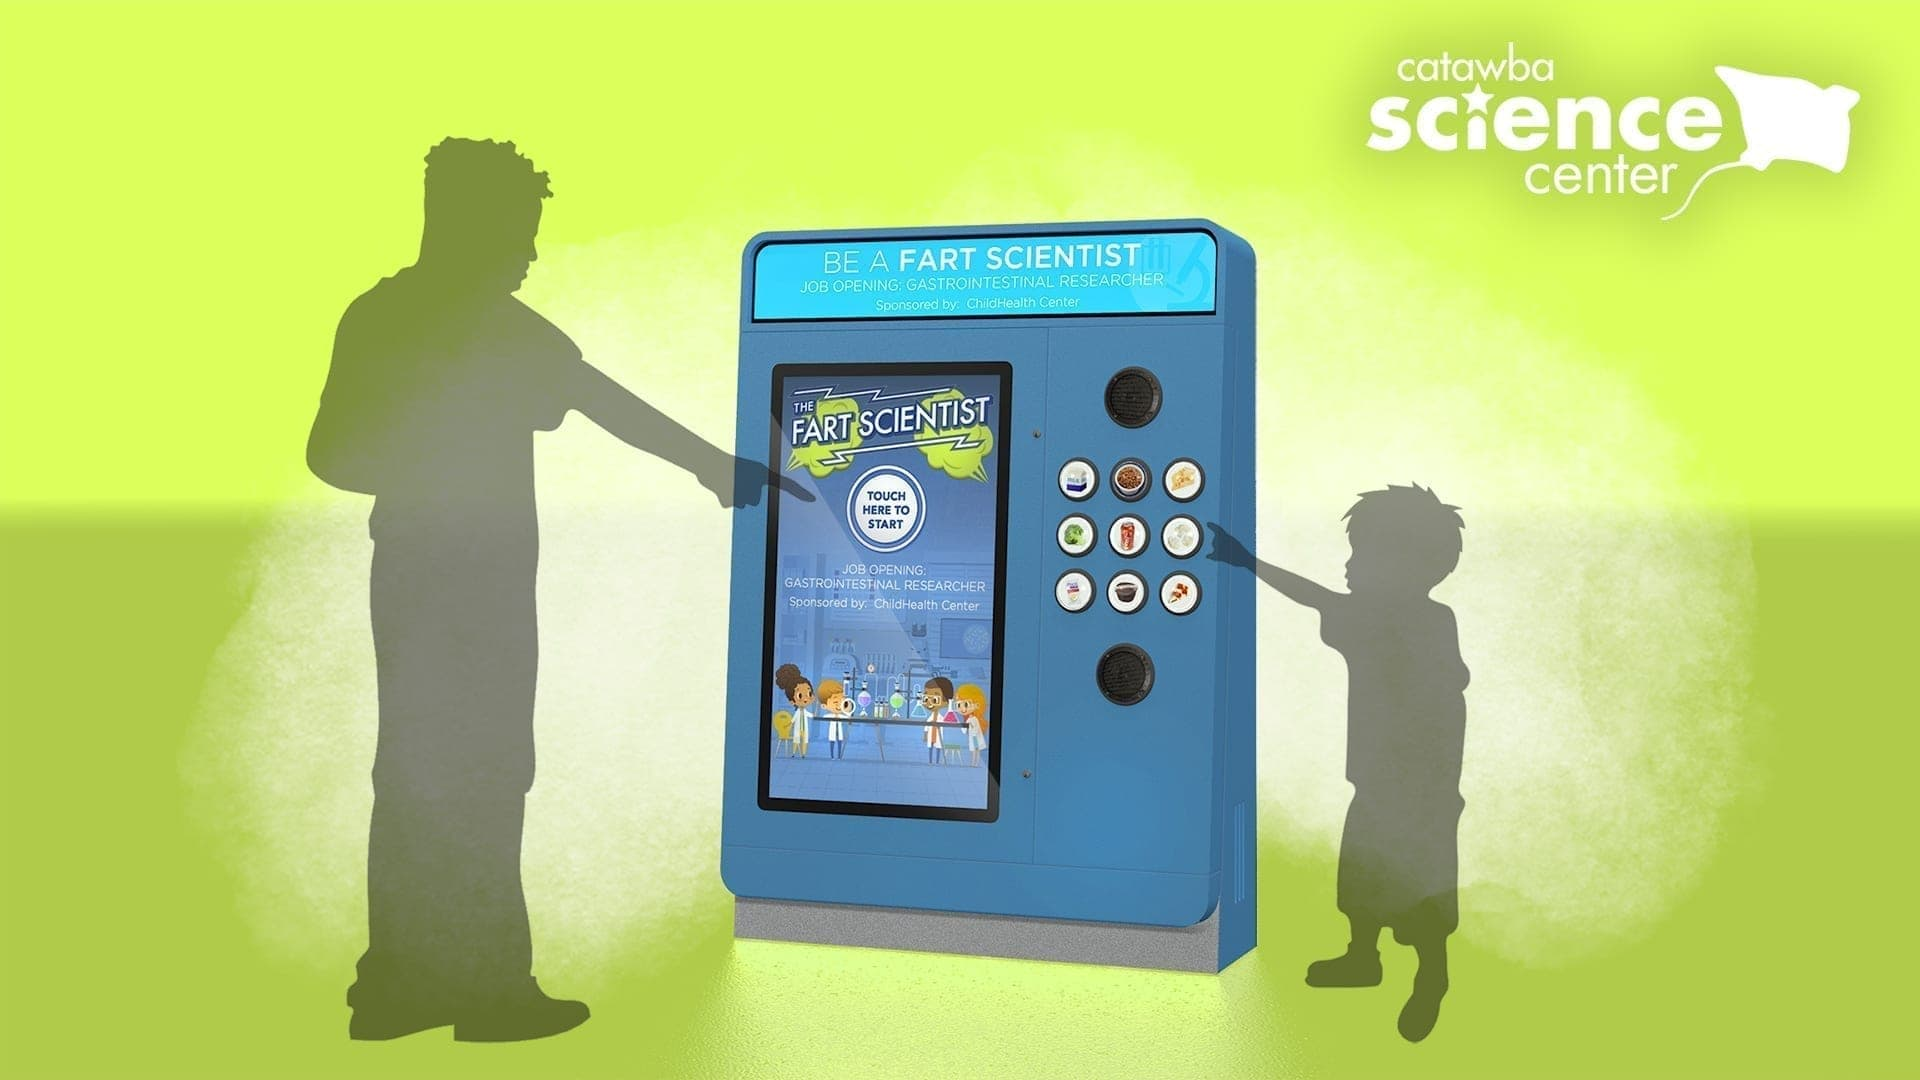 Science Center complete interactive kiosk concept digital graphic rendering